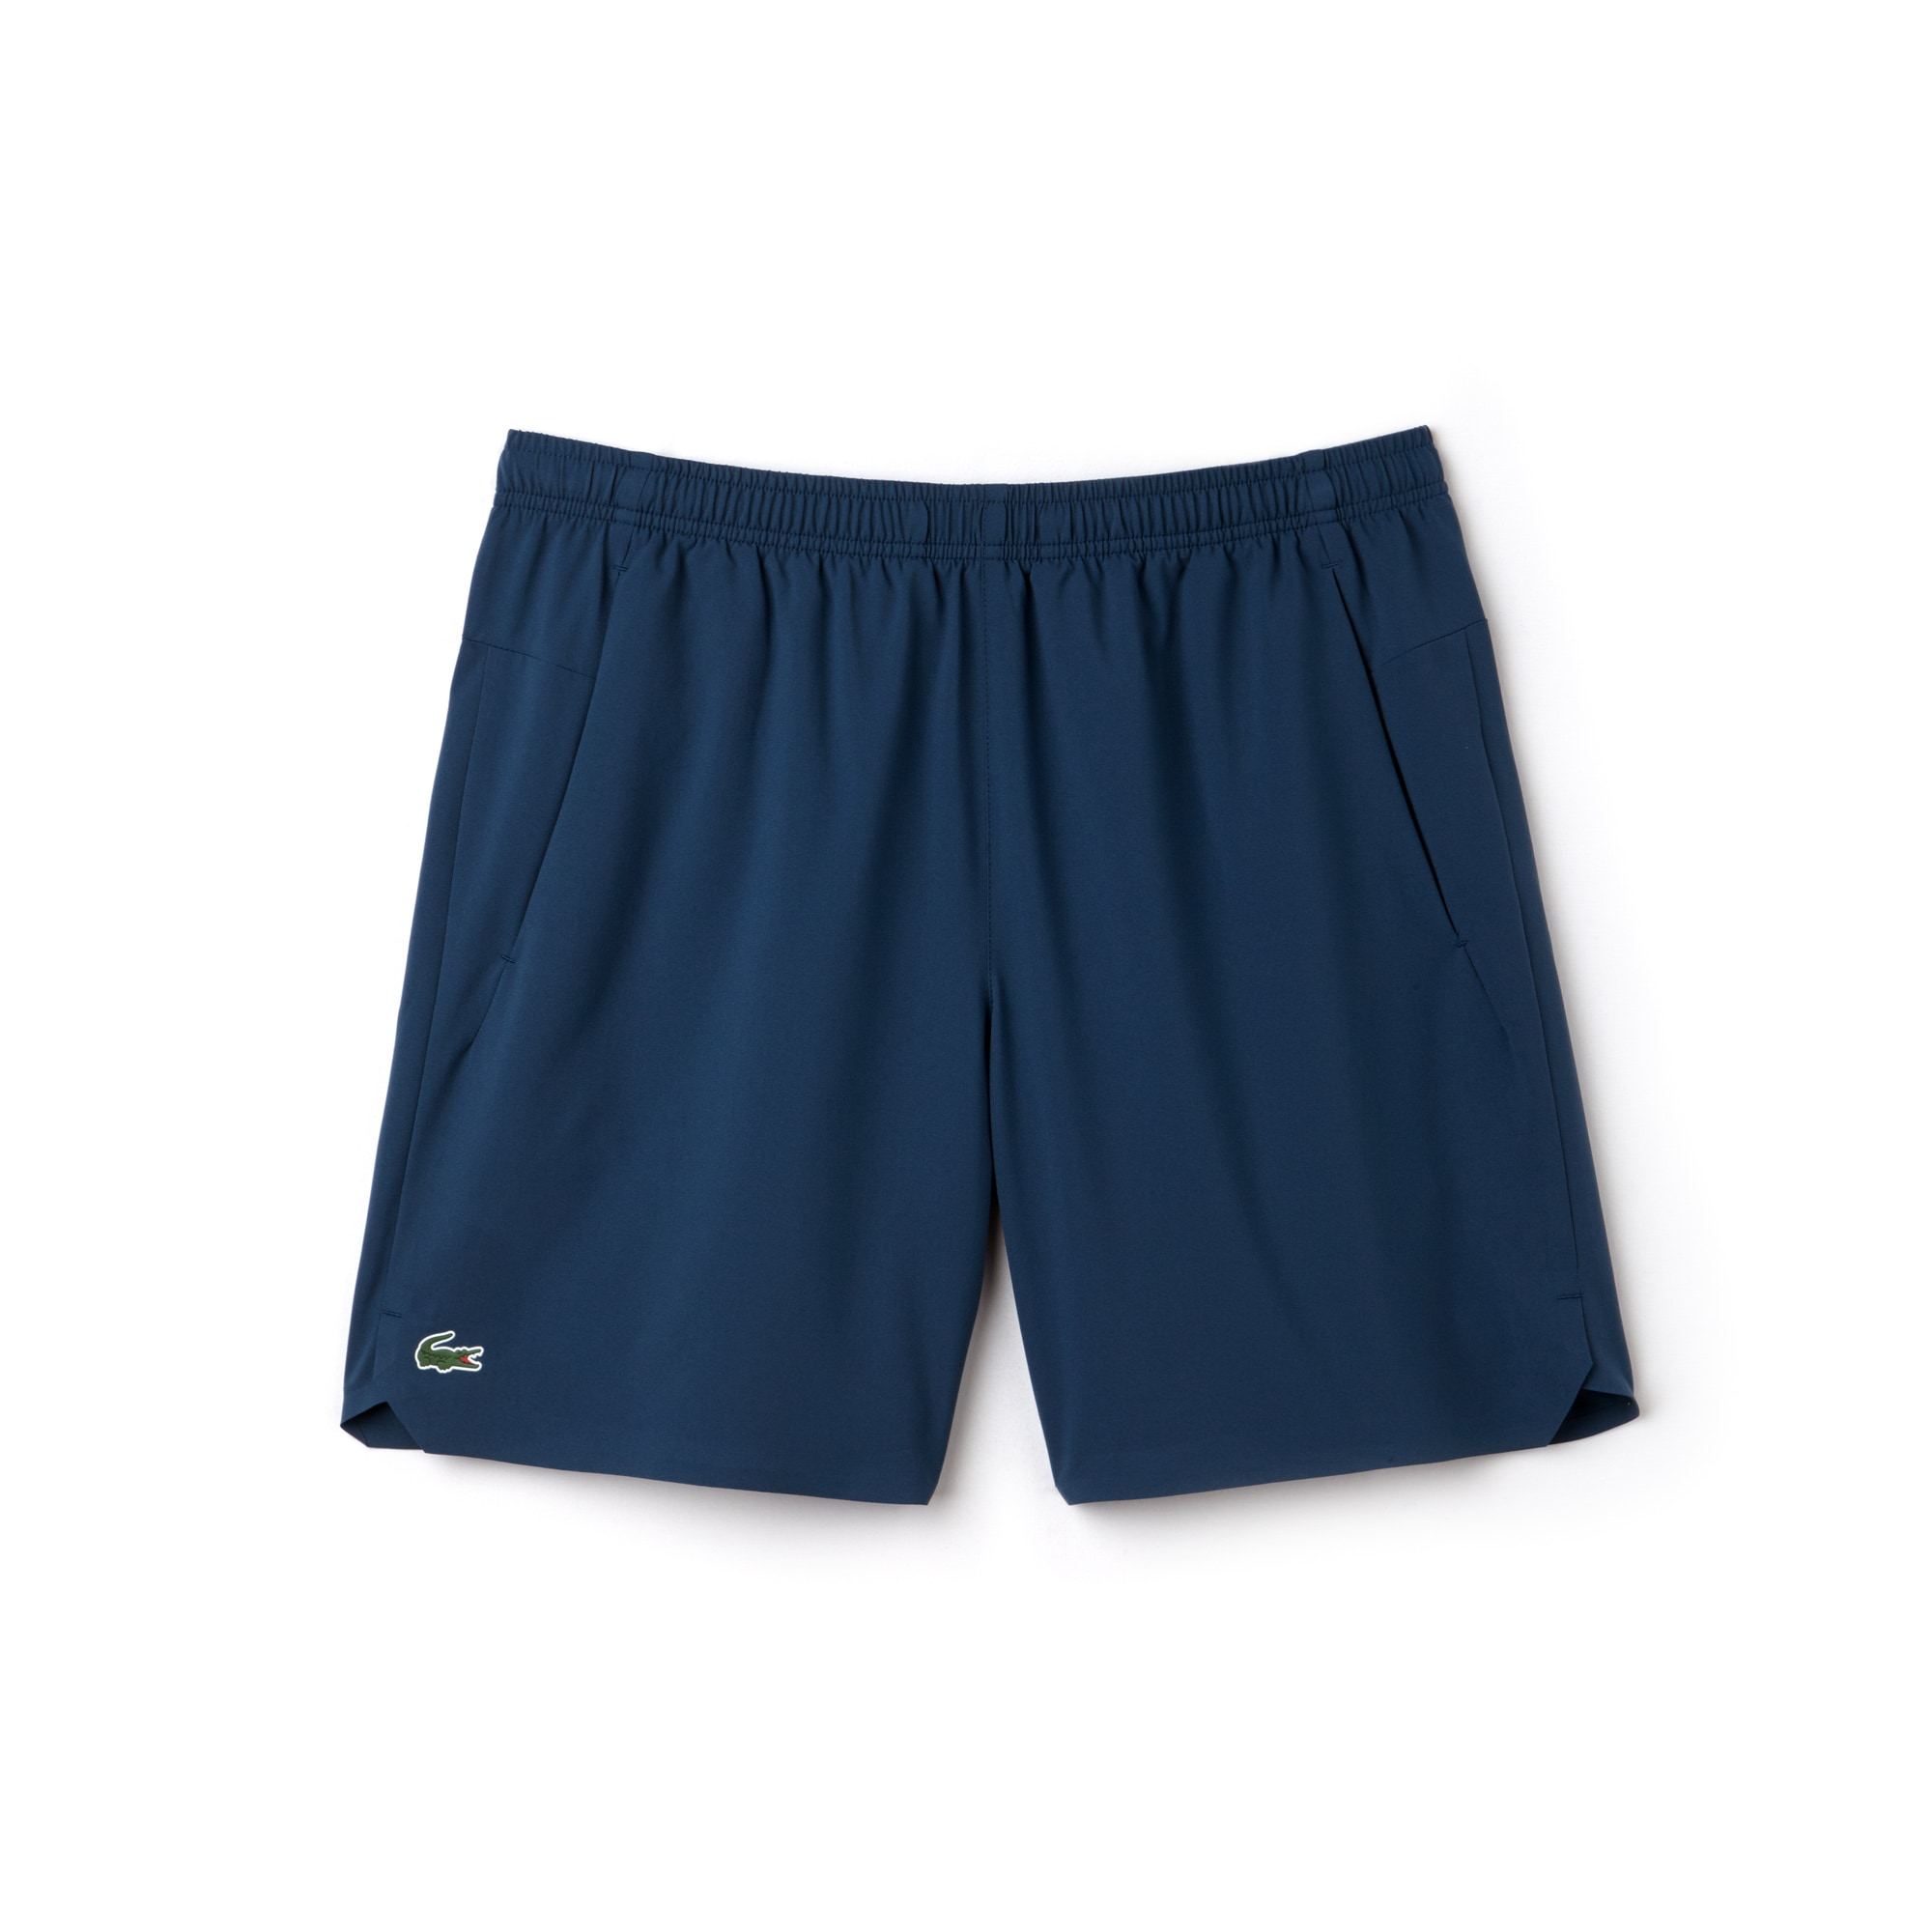 Men's SPORT Stretch Technical Shorts - Novak Djokovic Collection